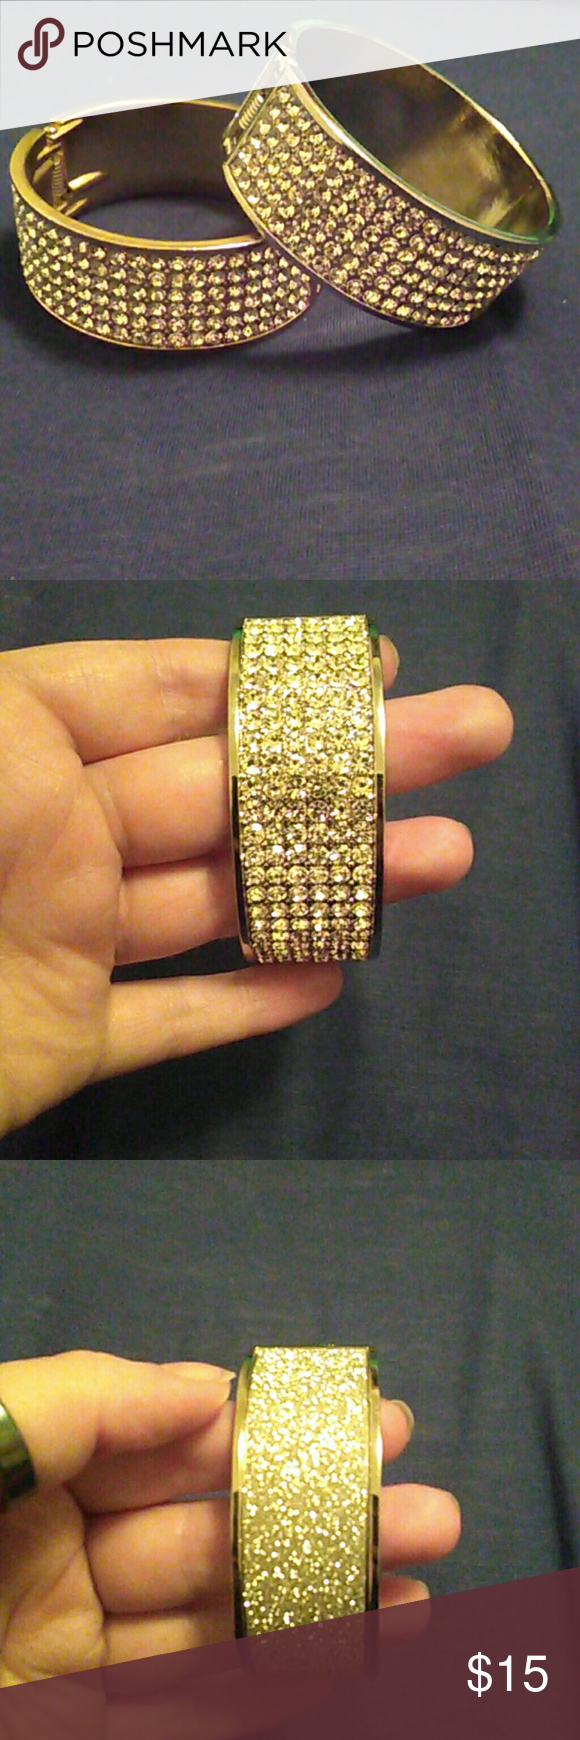 NWOT Silver Rhinestone Sparkle Bracelet I also have a gold version in my closet! Jewelry Bracelets